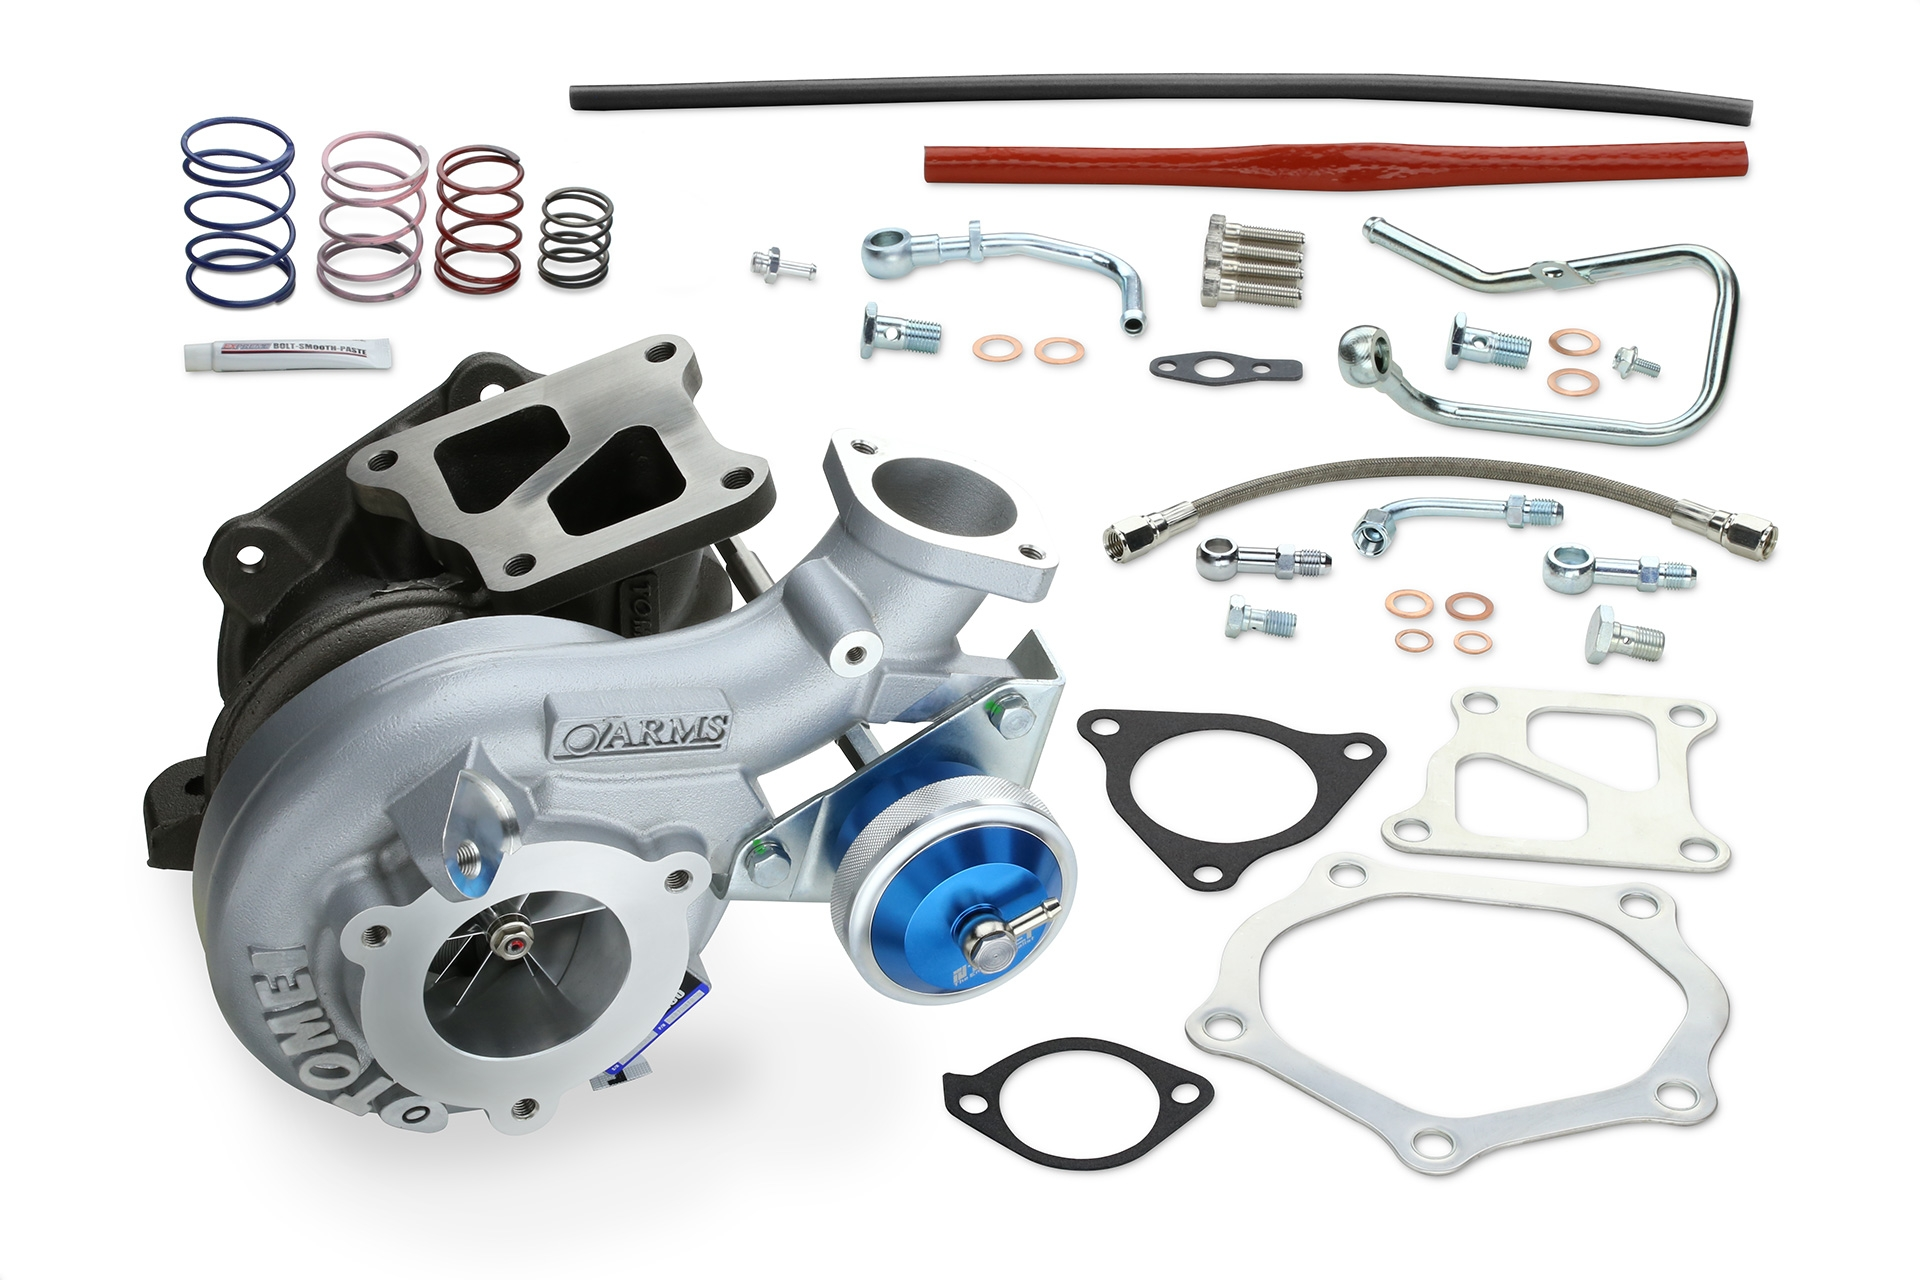 Tomei Turbocharger Kit Arms MX8280 4B11